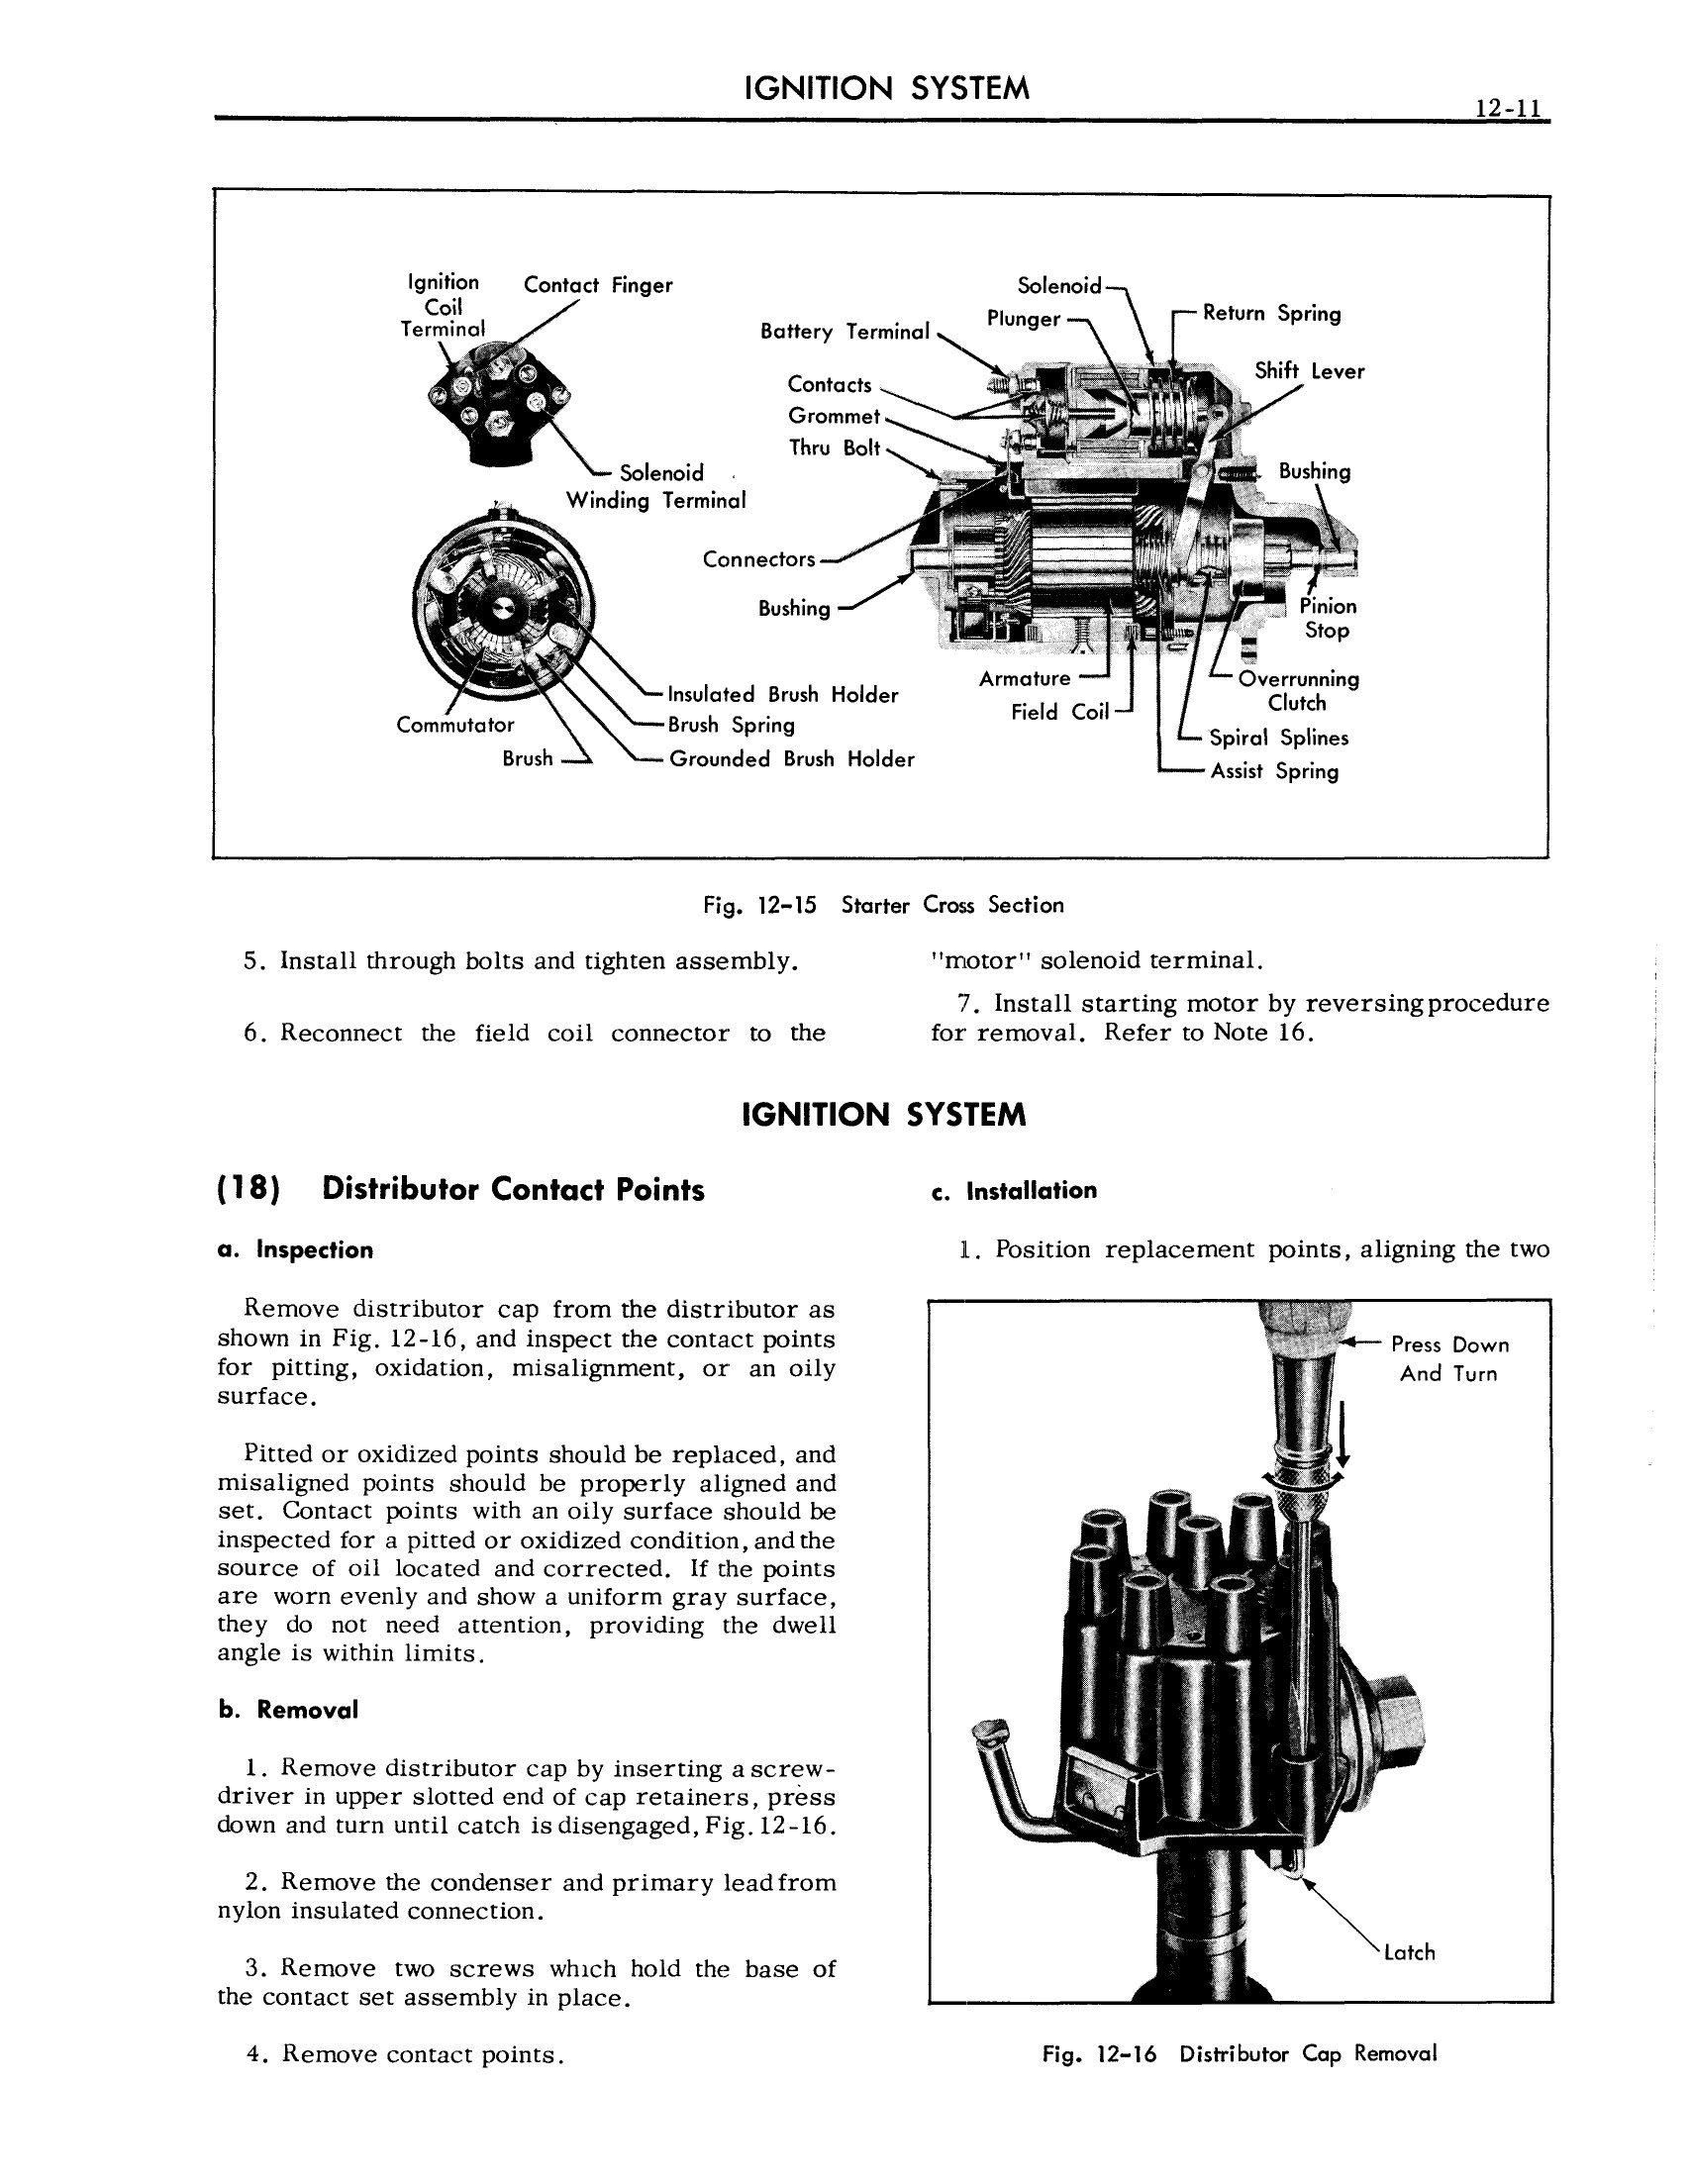 1957 Cadillac Shop Manual- Electrical Systems Page 11 of 50